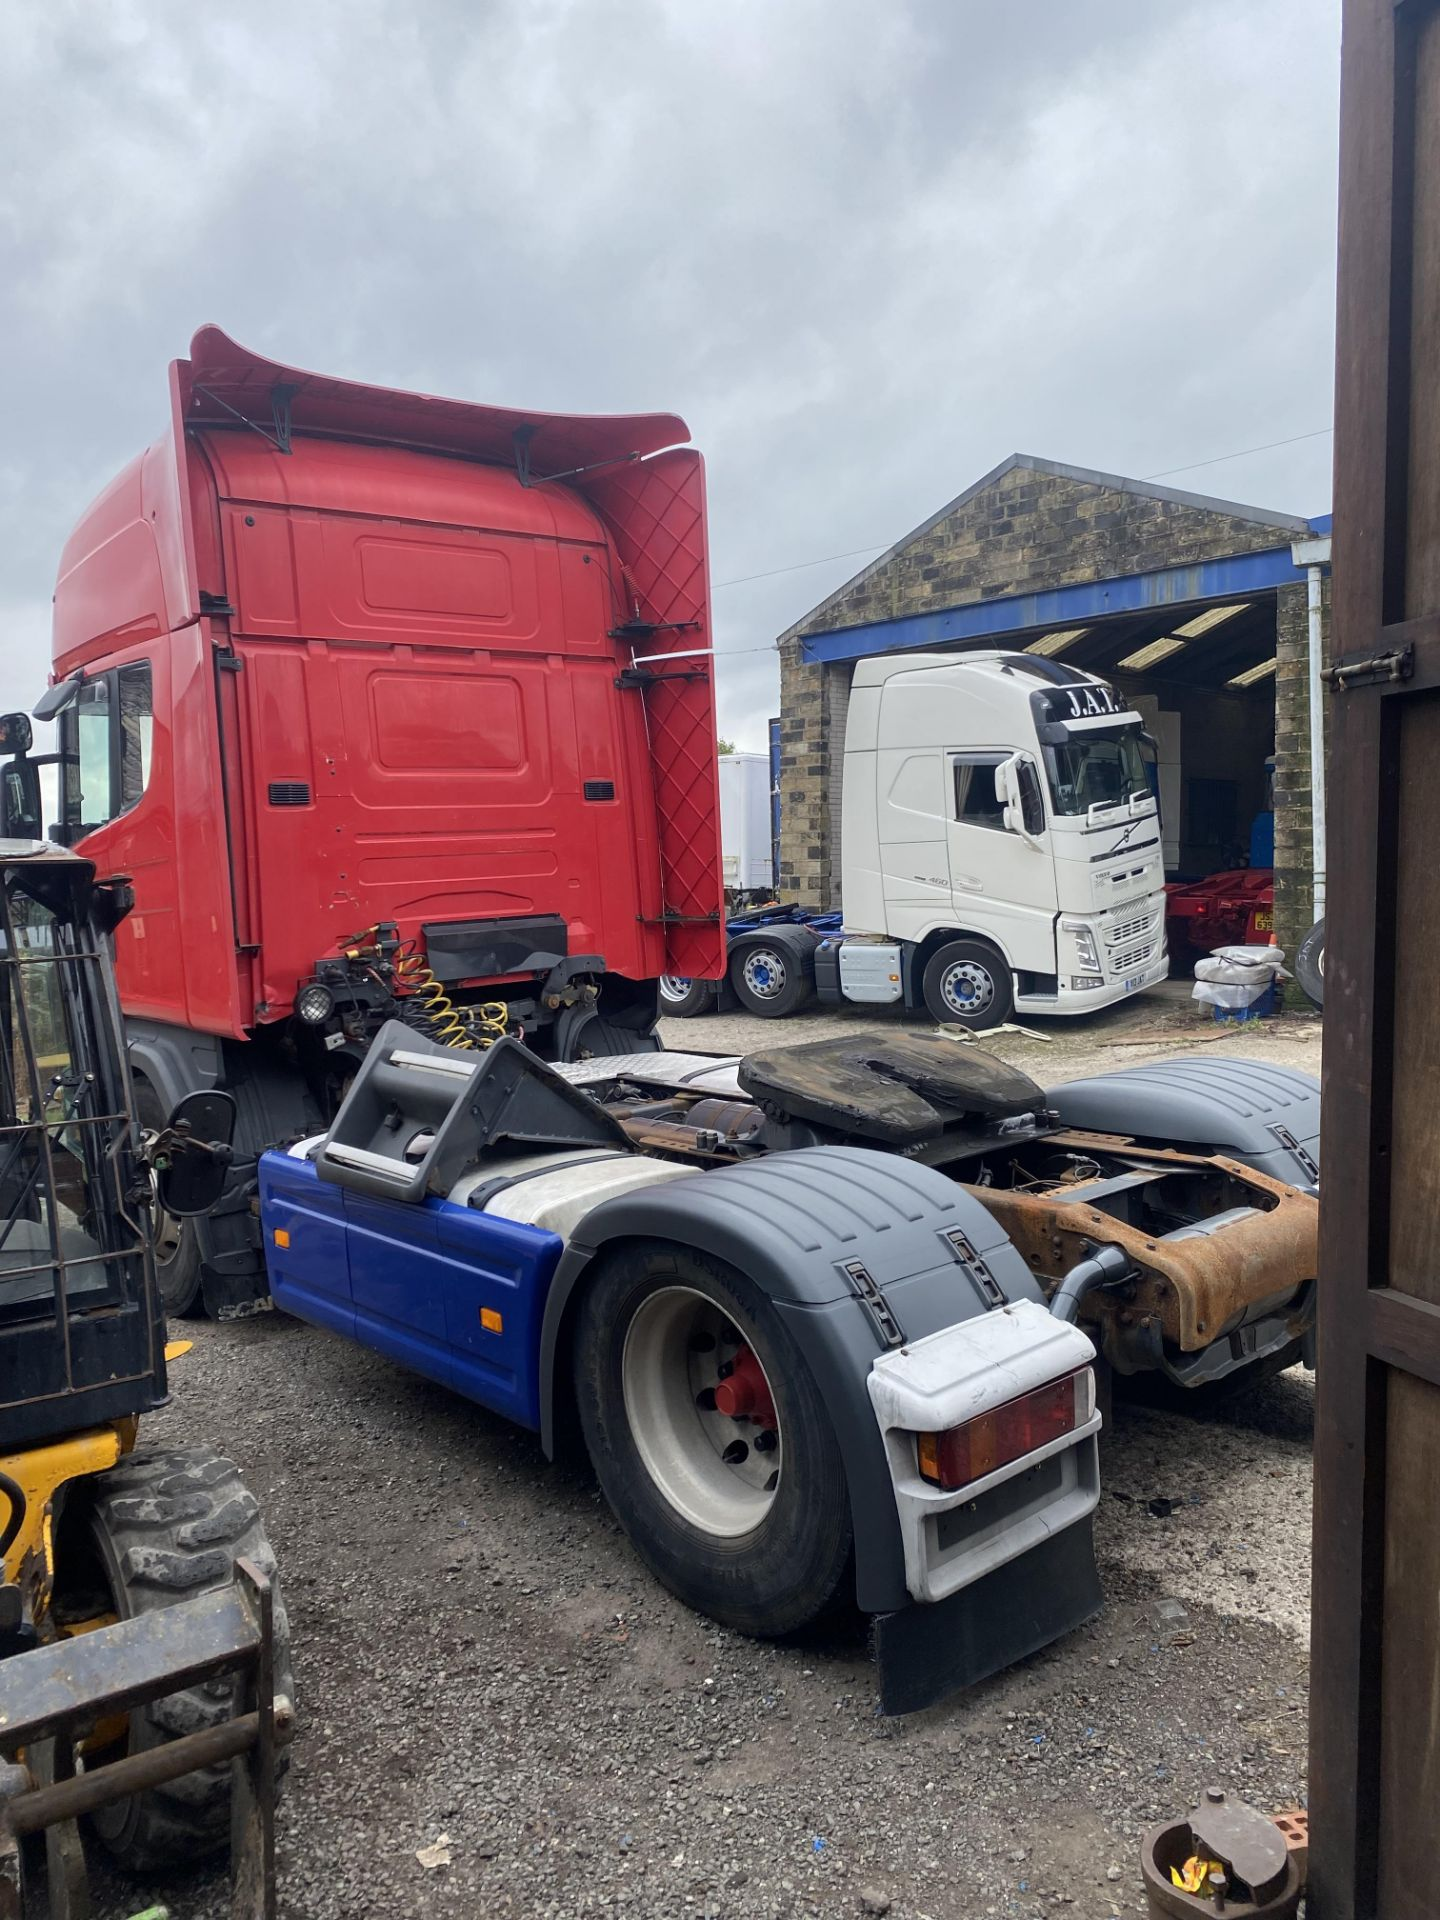 Scania 144 530 4X2 CLASSIC TRACTOR UNIT, registration no. Y281 TDA, date first registered 01/03/ - Image 5 of 19